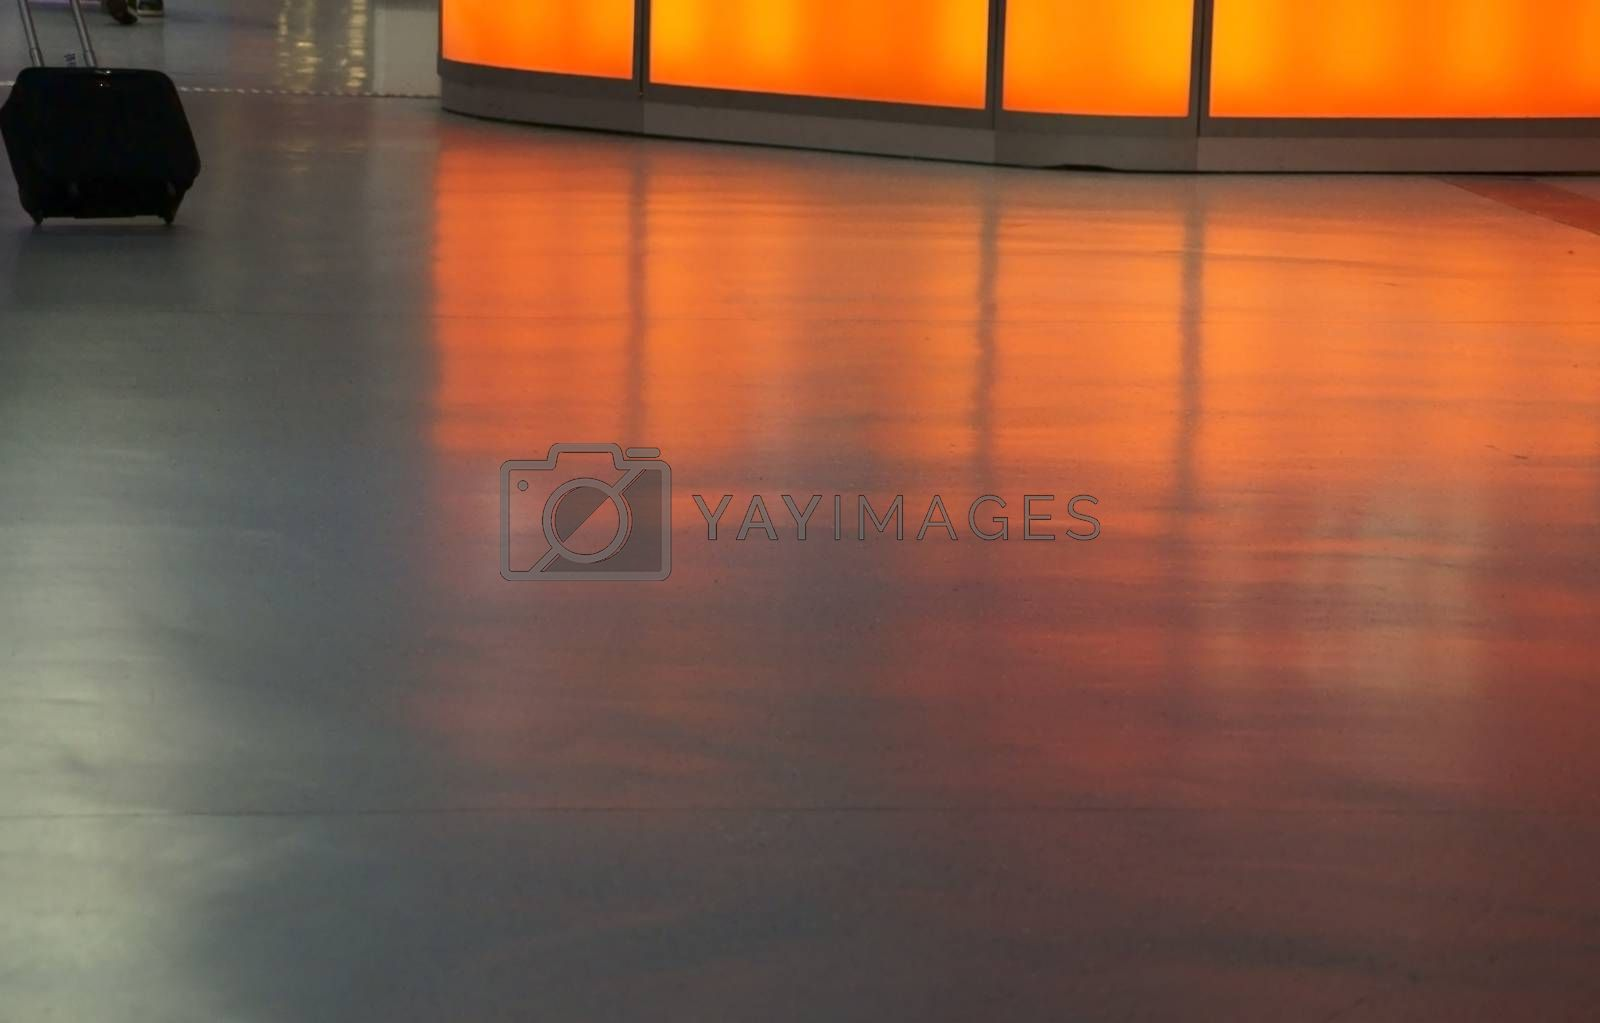 Royalty free image of Foyer airport by ginton